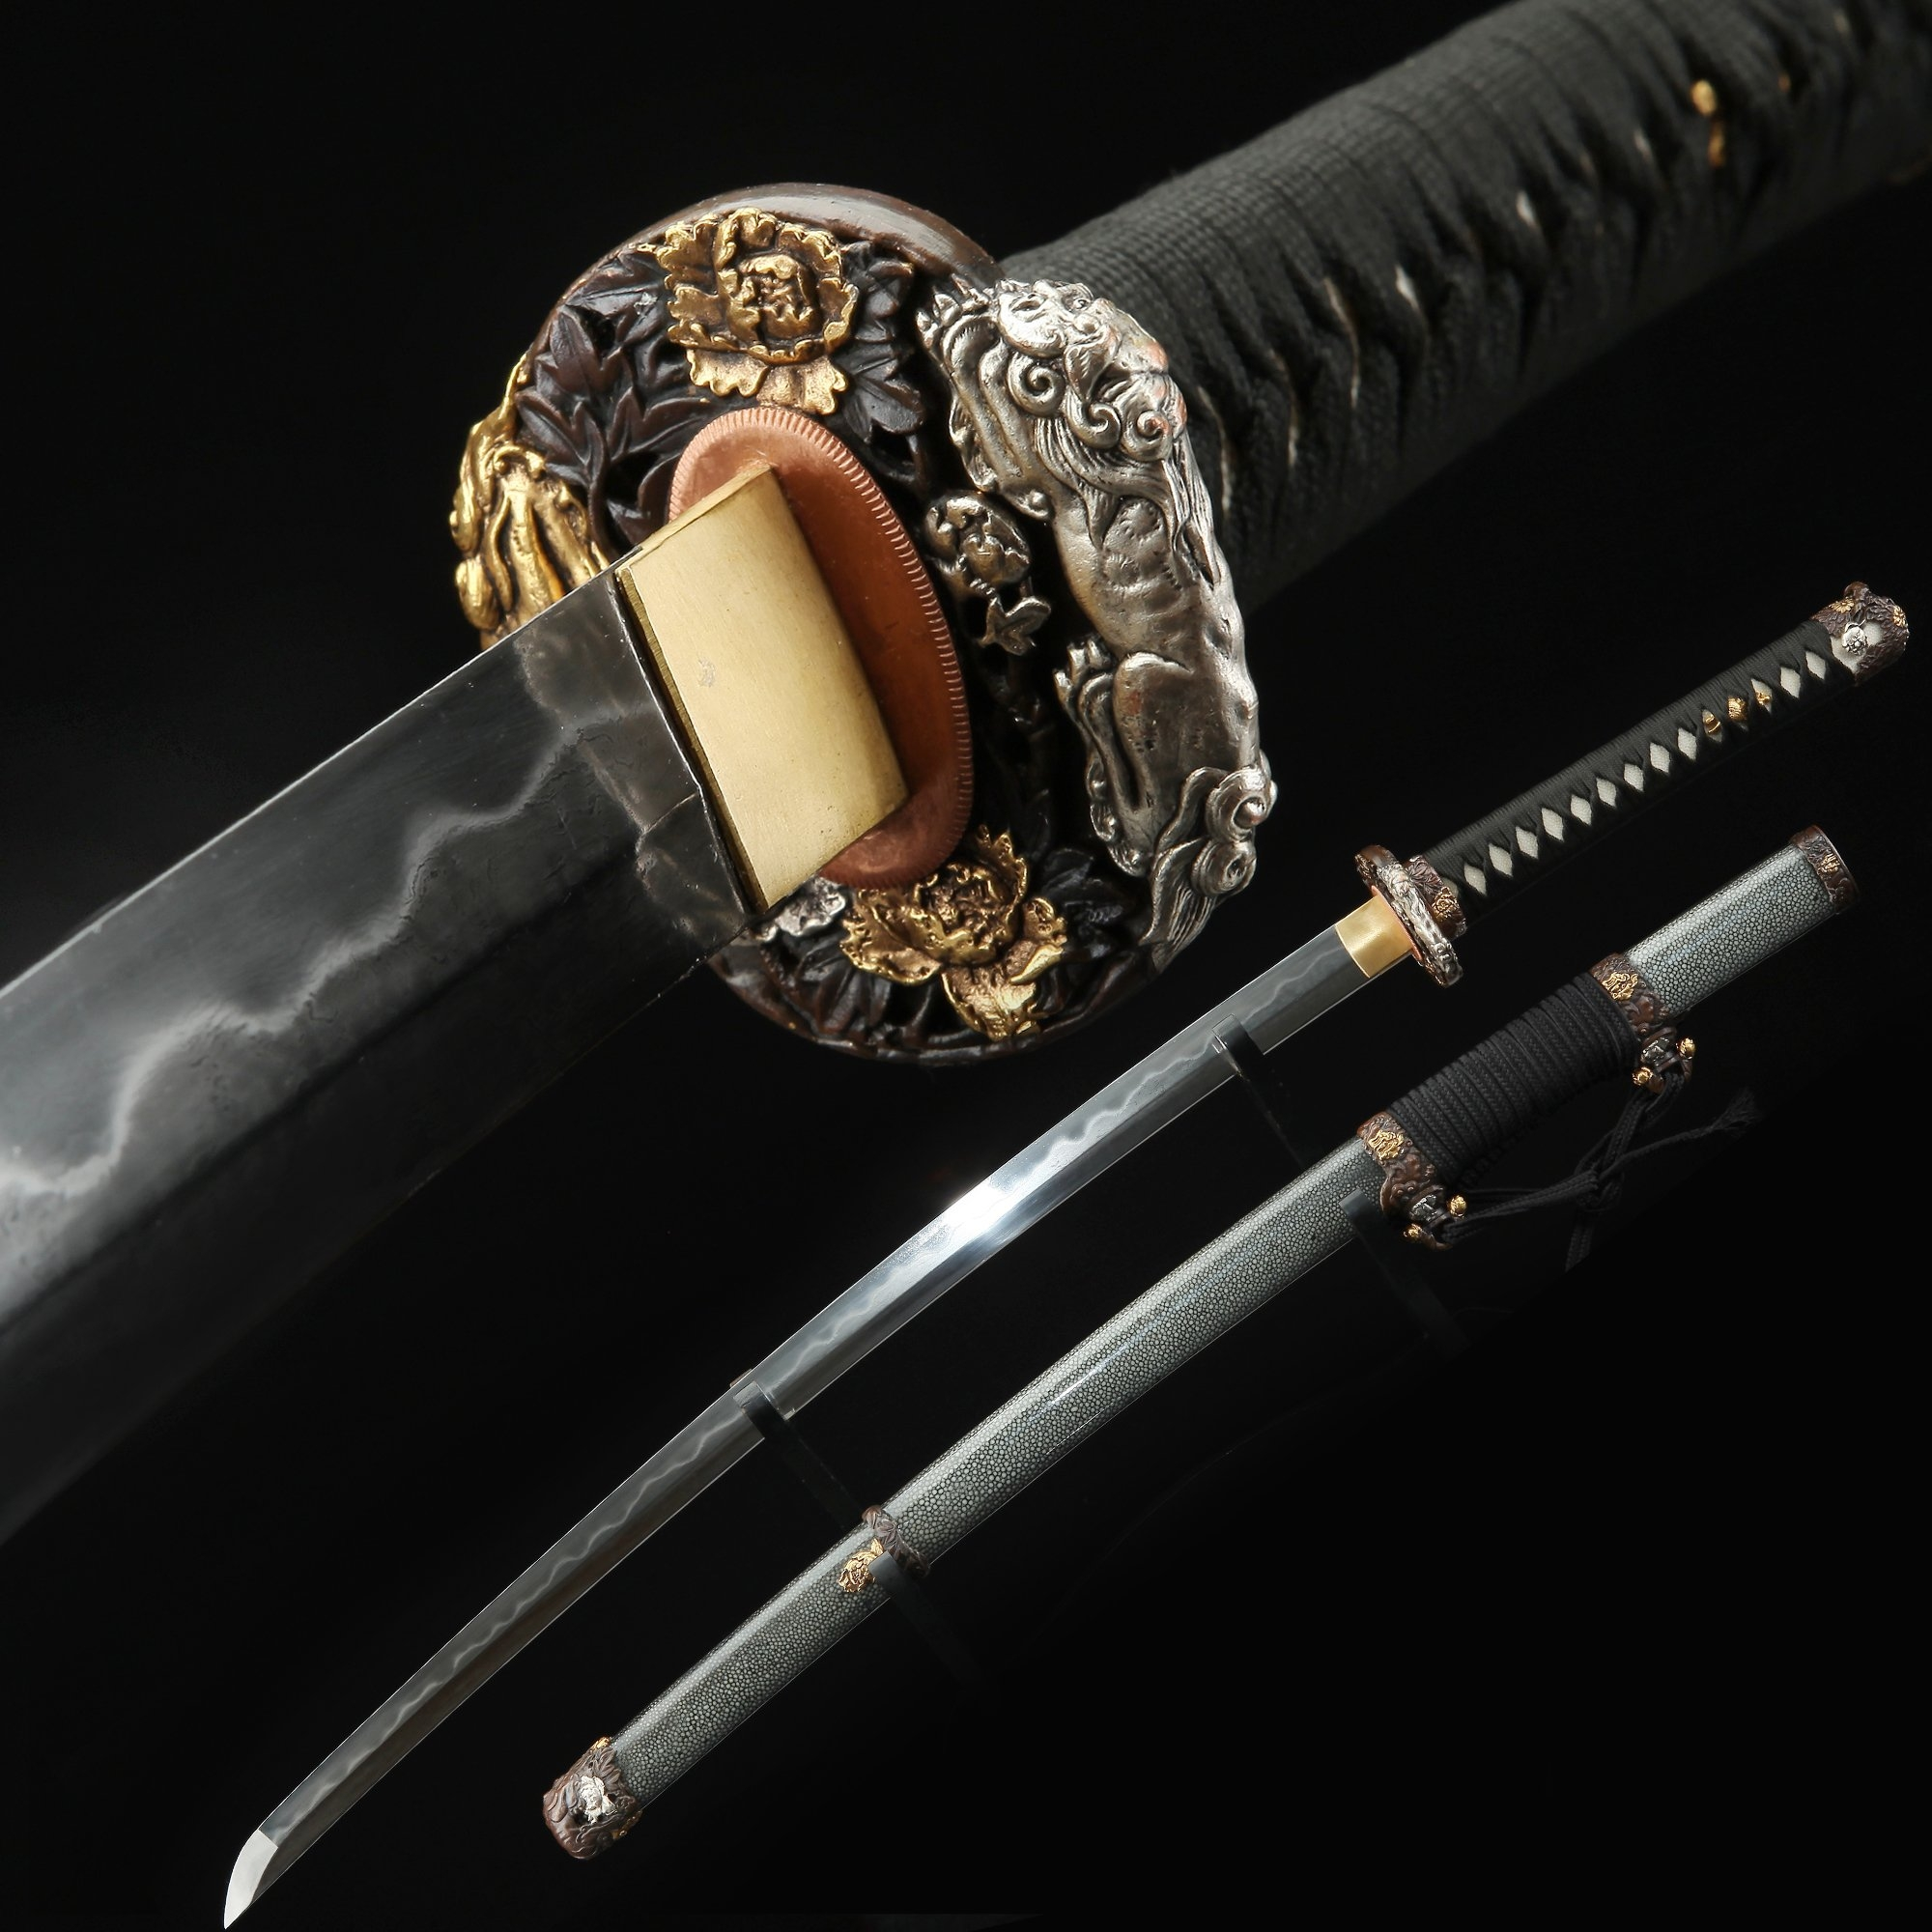 Japanese Tachi Odachi Sword With T10 Folded Clay Tempered Steel With Gray Scabbard